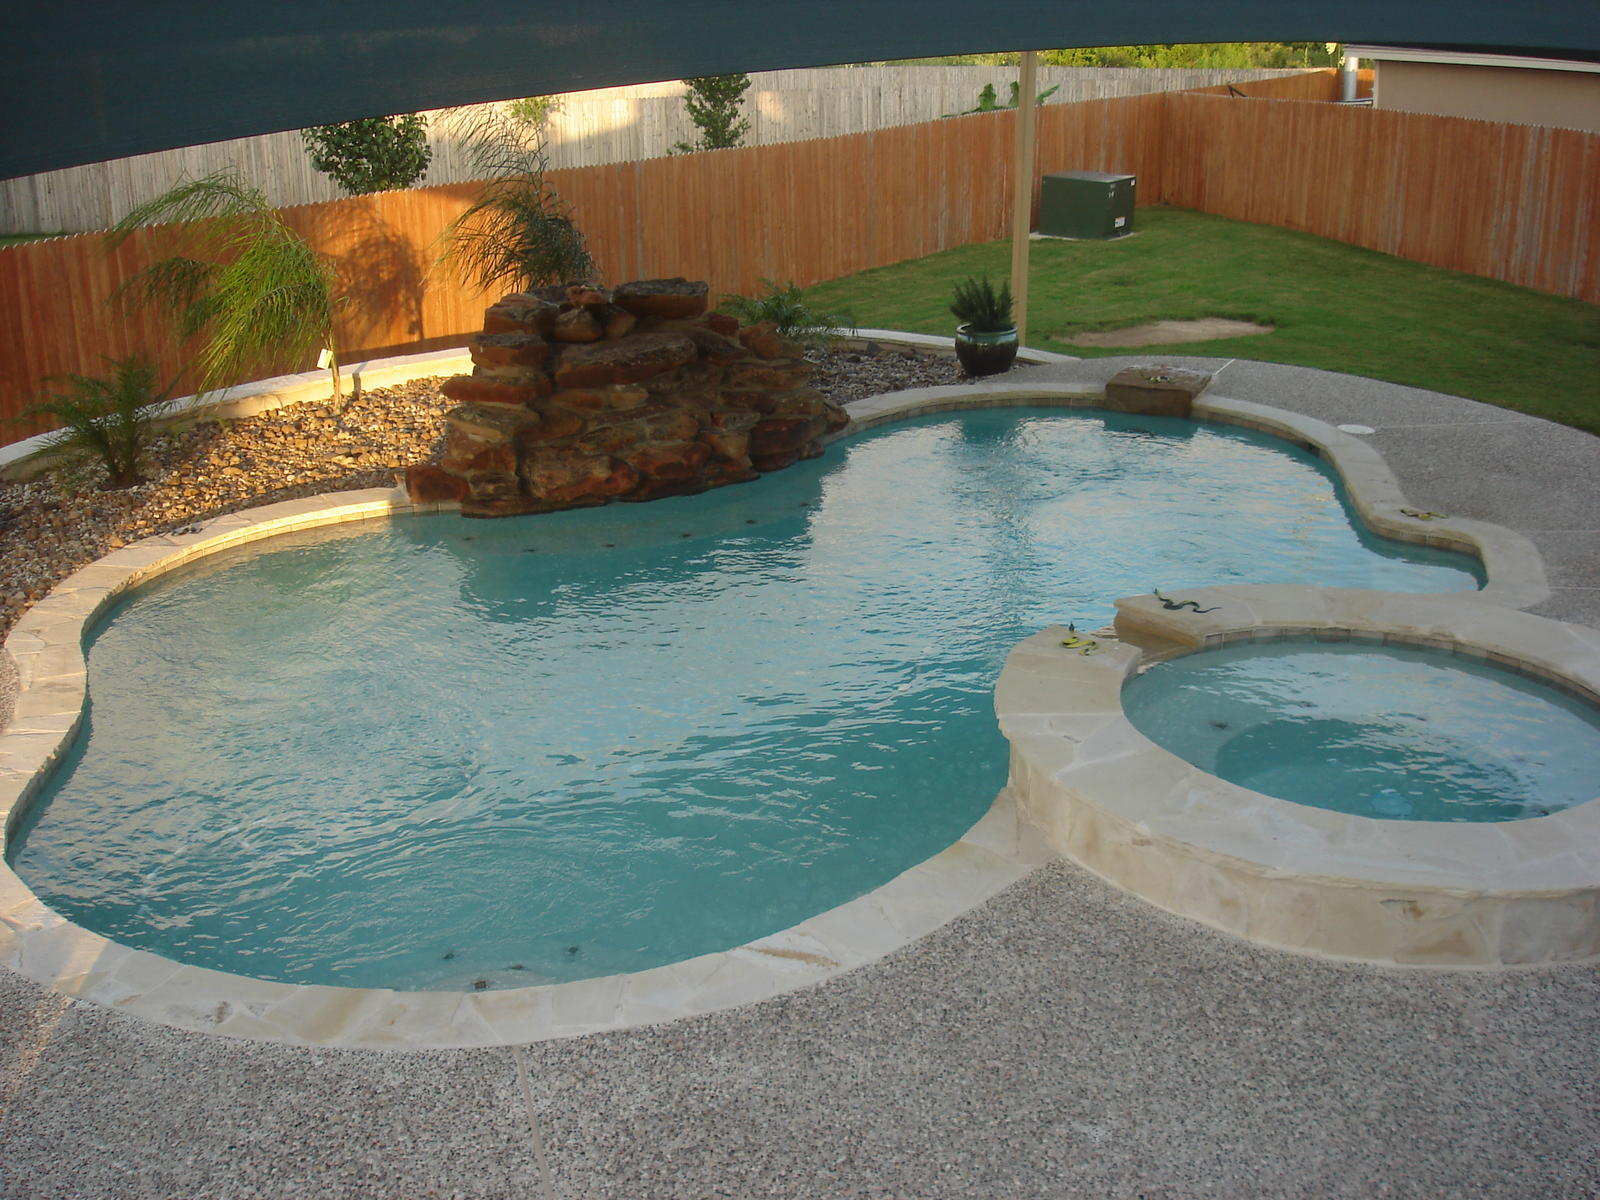 Recommendation on swimming pool companies san antonio keene heat pump design inground pool City of san antonio swimming pools